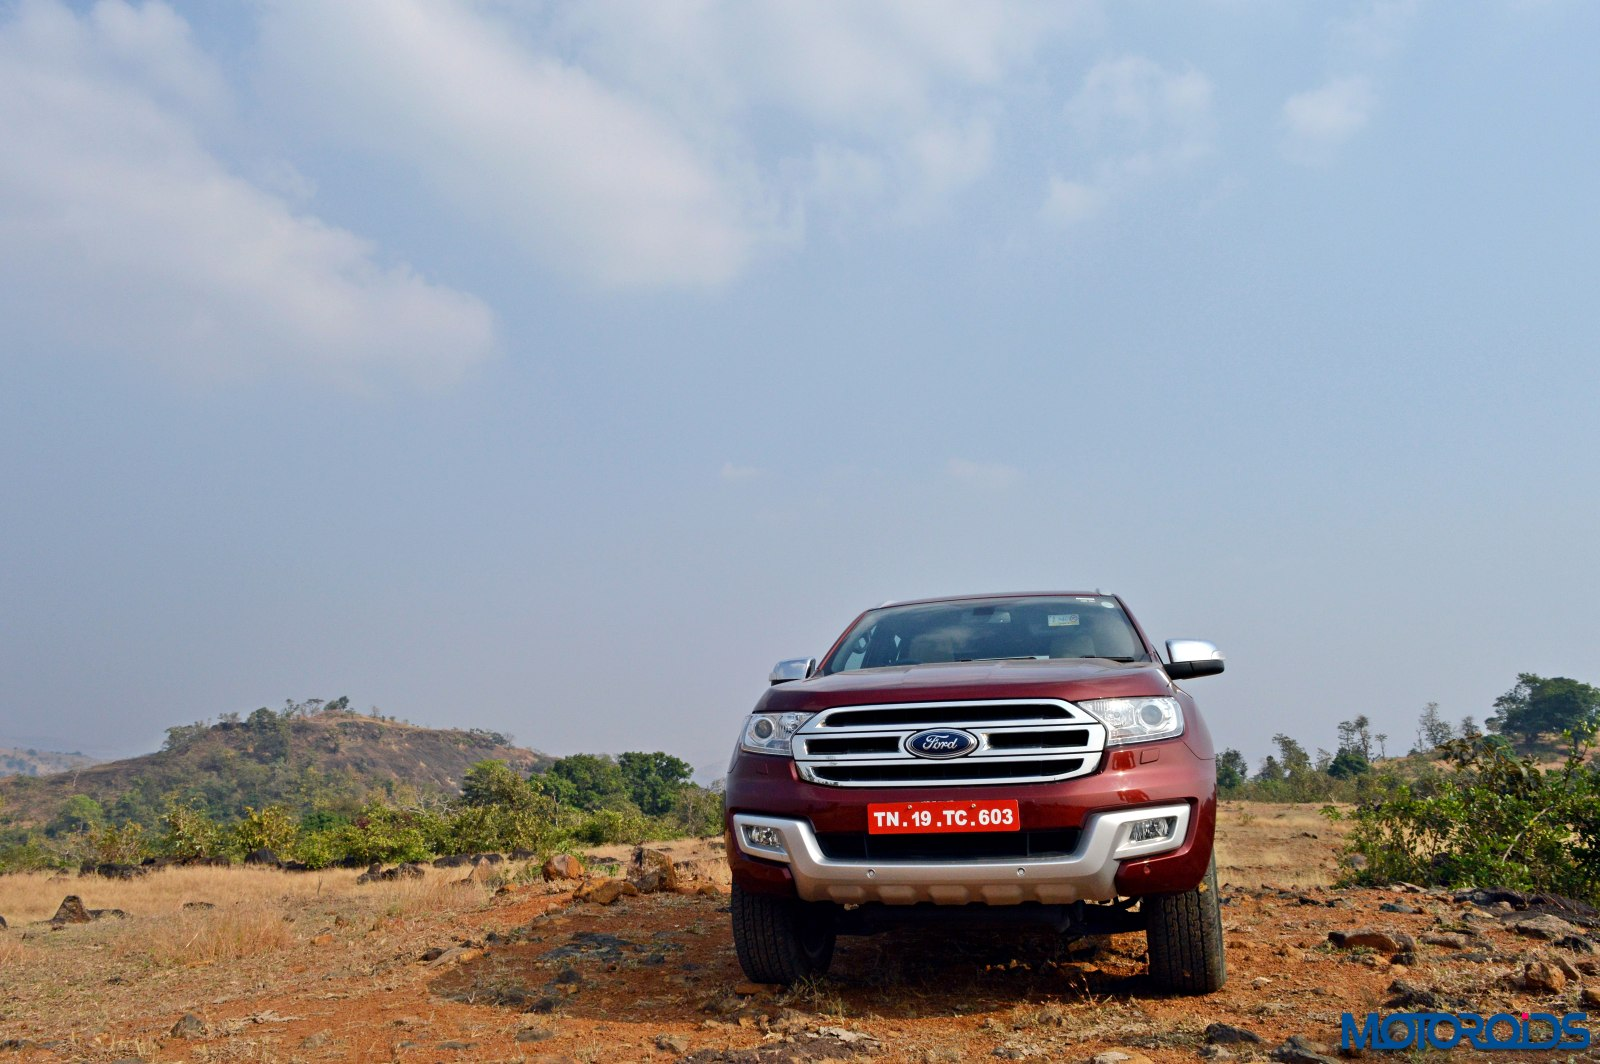 new 2016 Ford Endeavour india review (11)